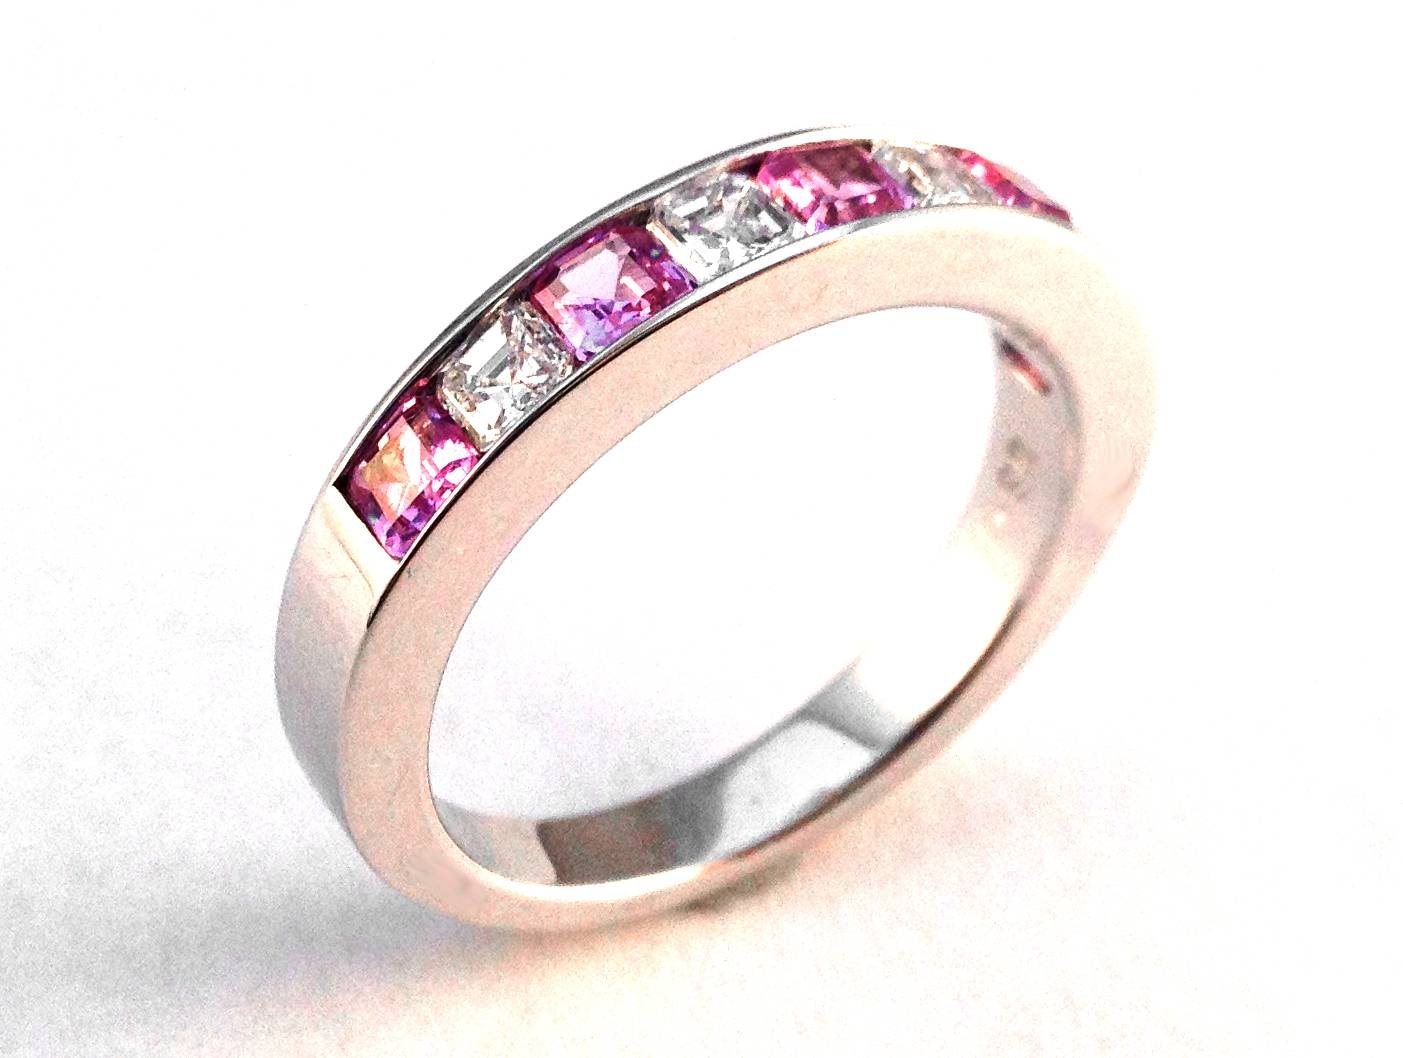 Wedding Band – Four Stone Asscher Diamond & Pink Sapphire Wedding Throughout Most Up To Date Pink And Diamond Wedding Bands (View 11 of 15)